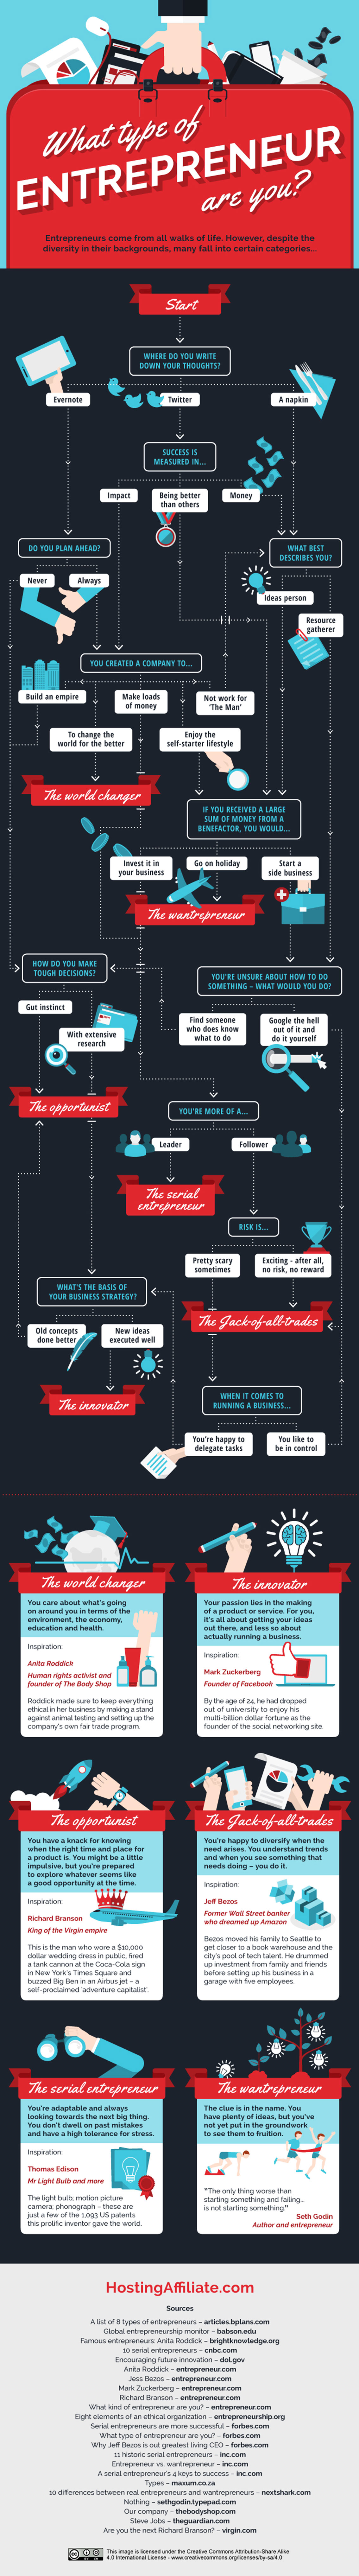 What Type of Entrepreneur are You - Business Infographic